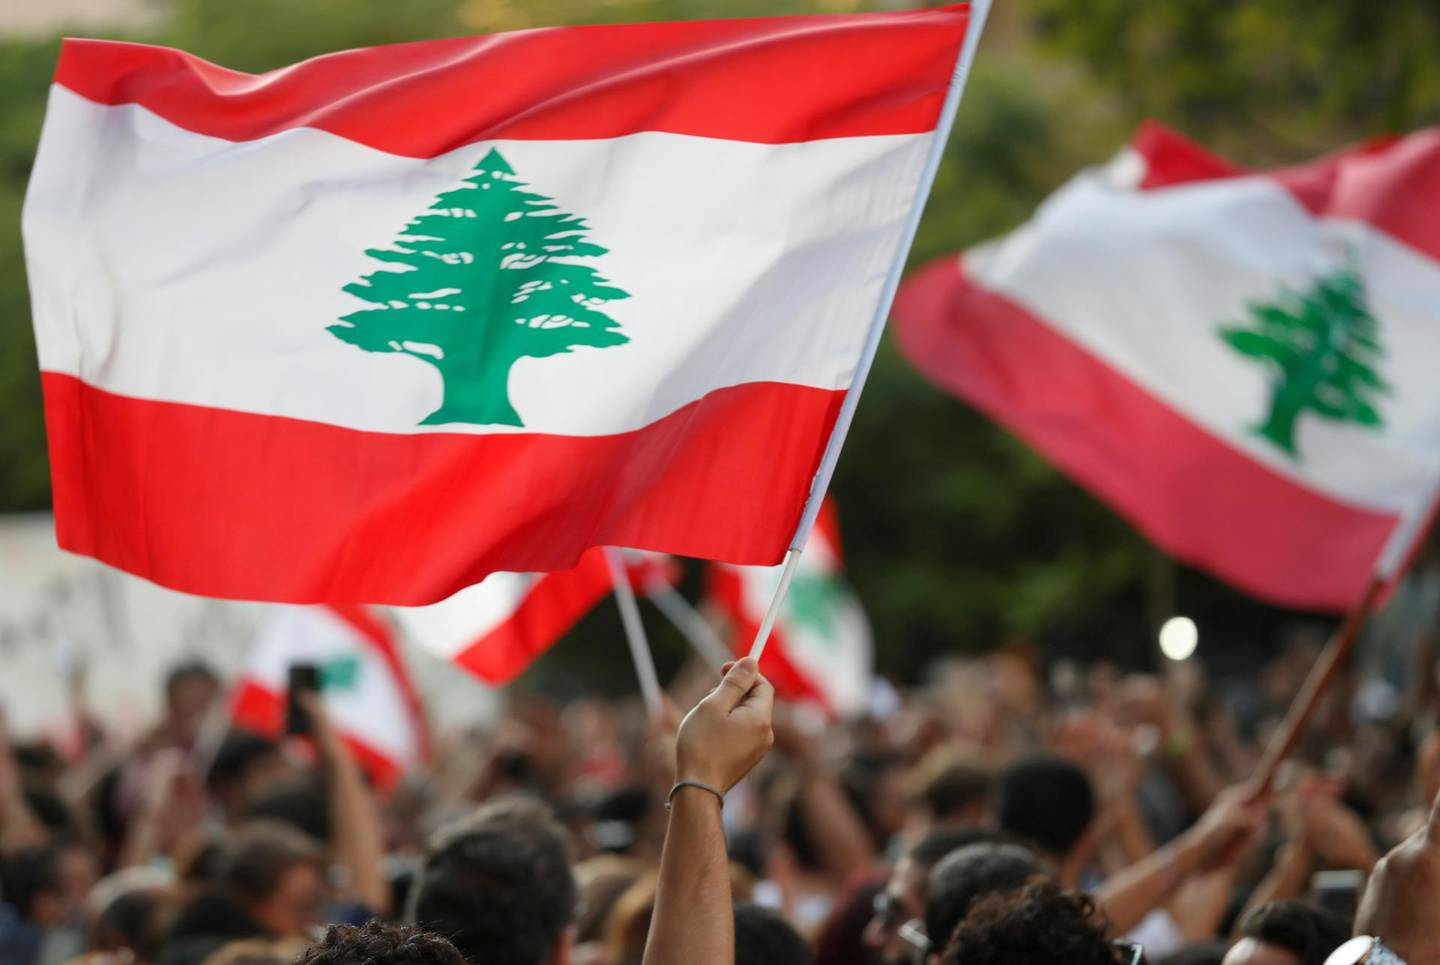 FILE PHOTO: Demonstrators wave Lebanese flags during a protest in Beirut, Lebanon, October 31, 2019. REUTERS/Goran Tomasevic/File Photo